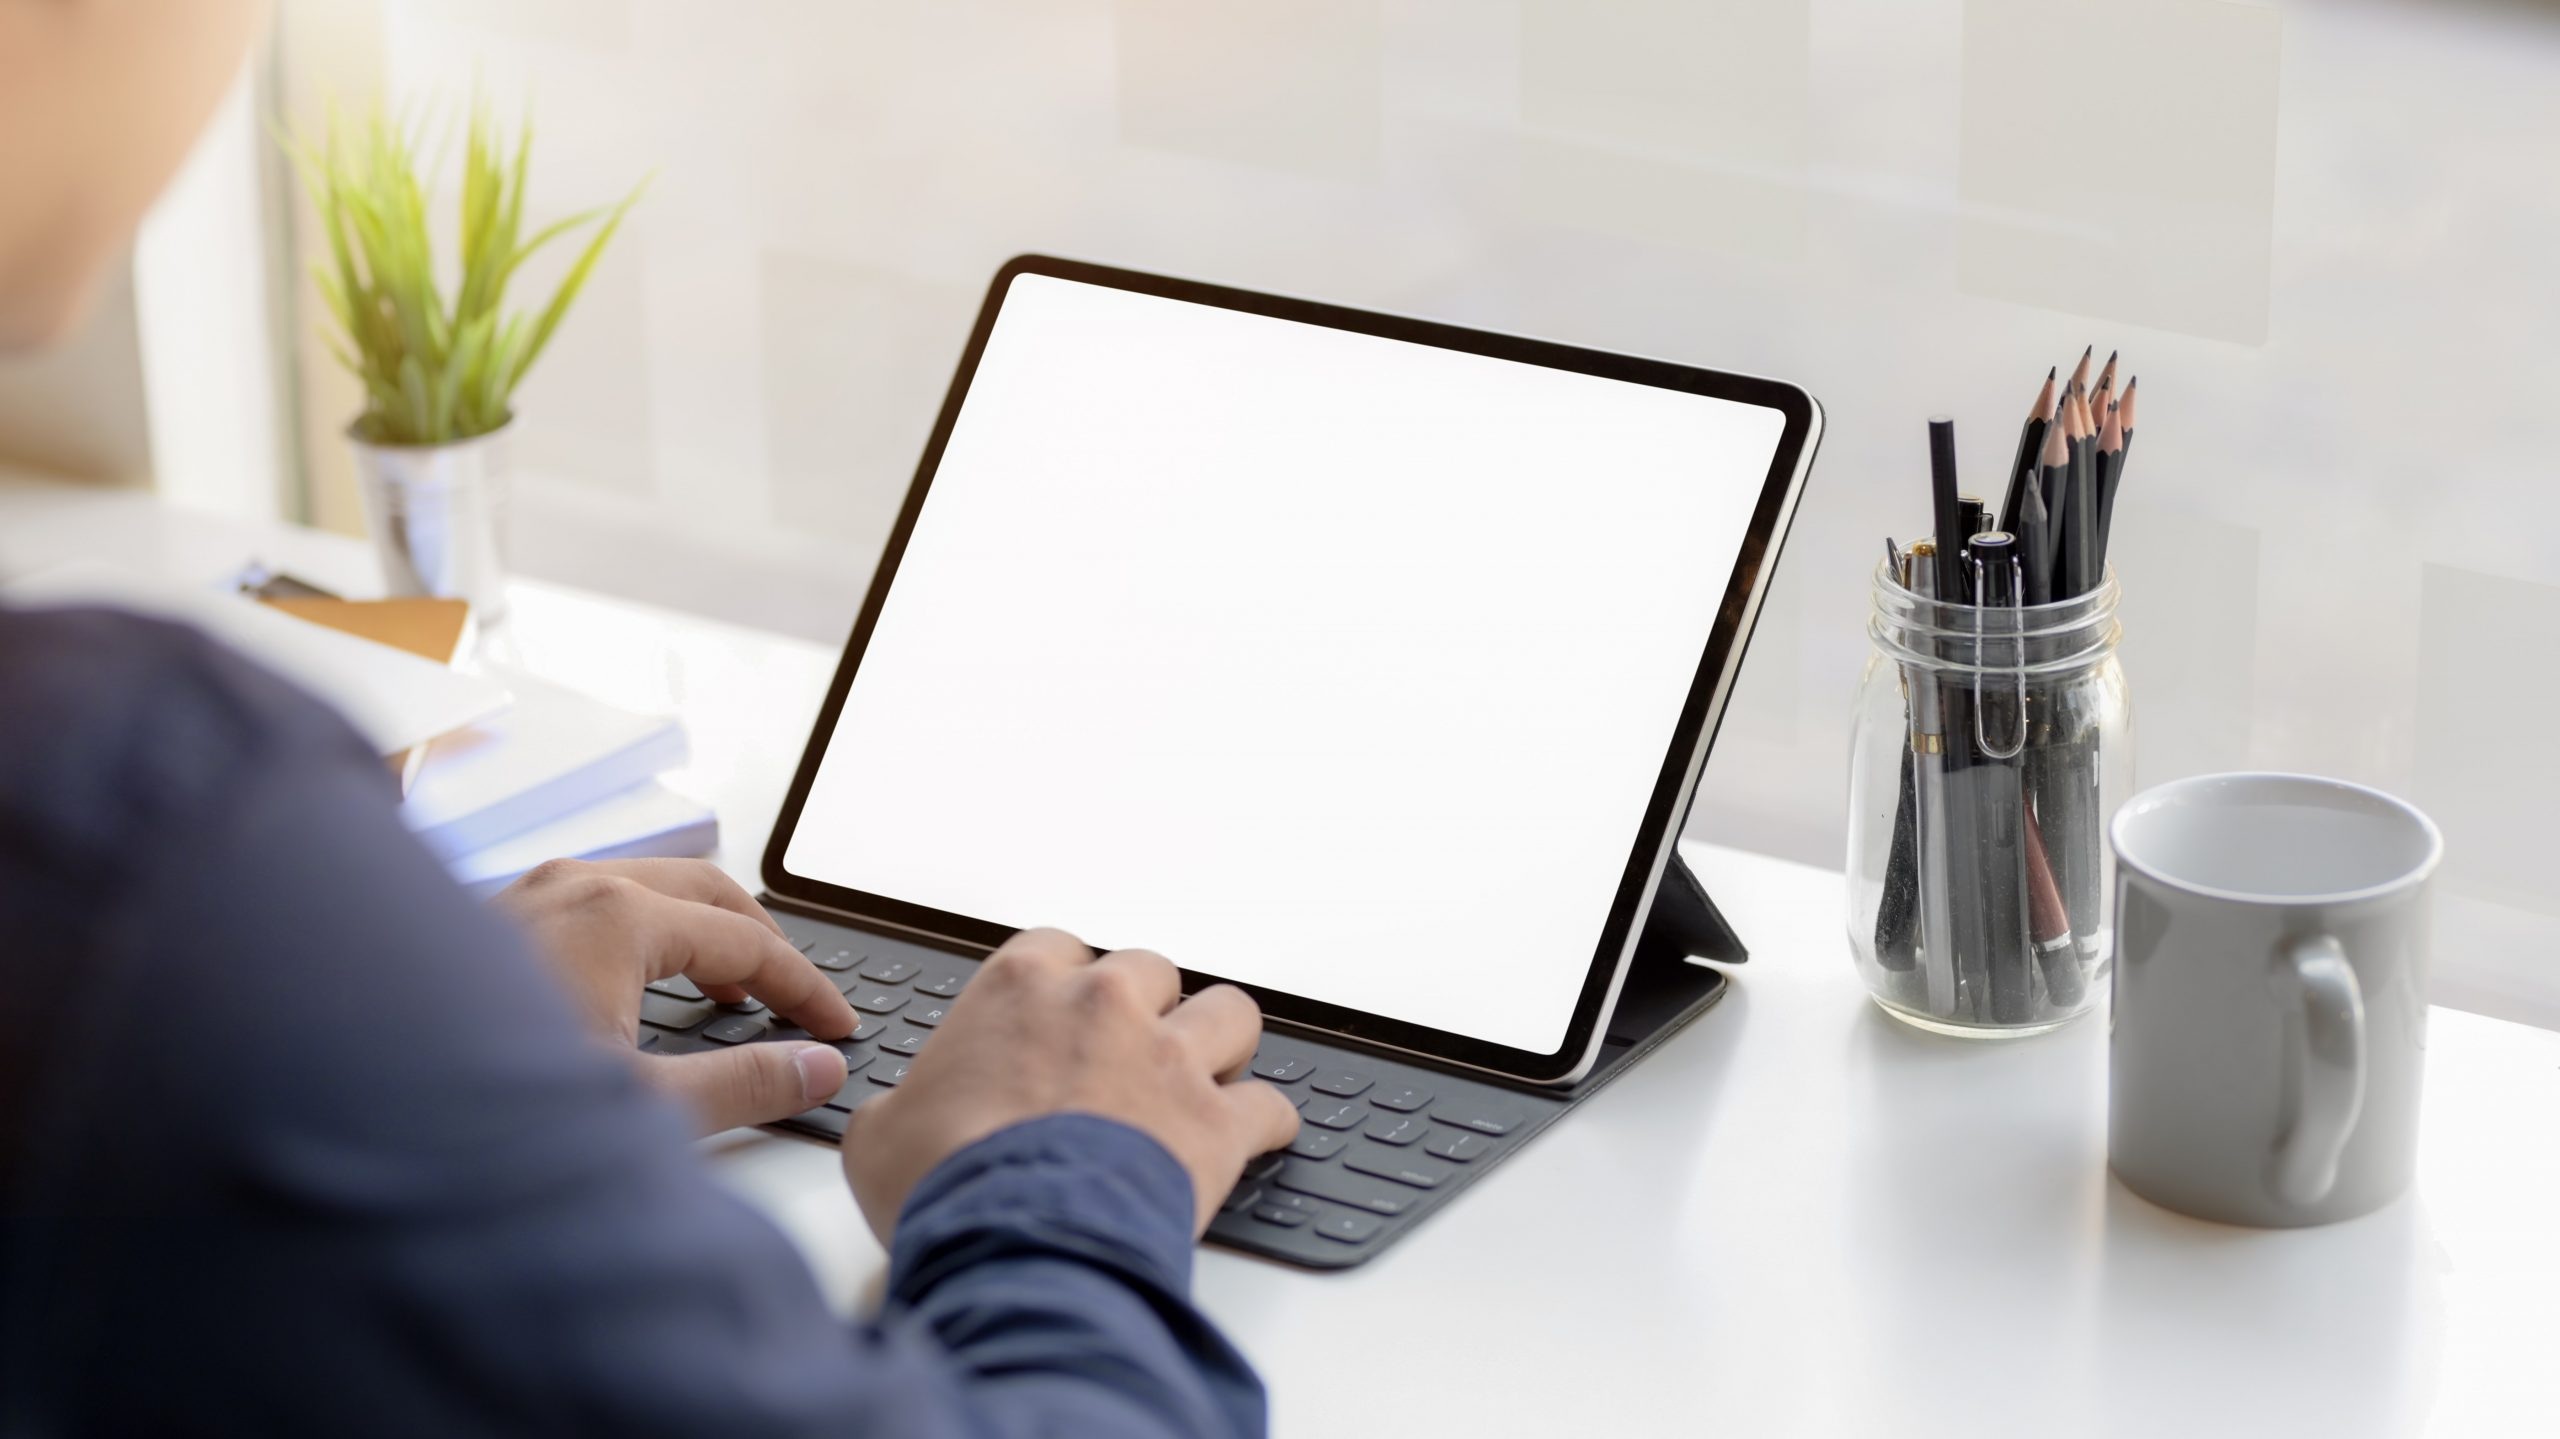 person-using-macbook-pro-on-white-table-3843359